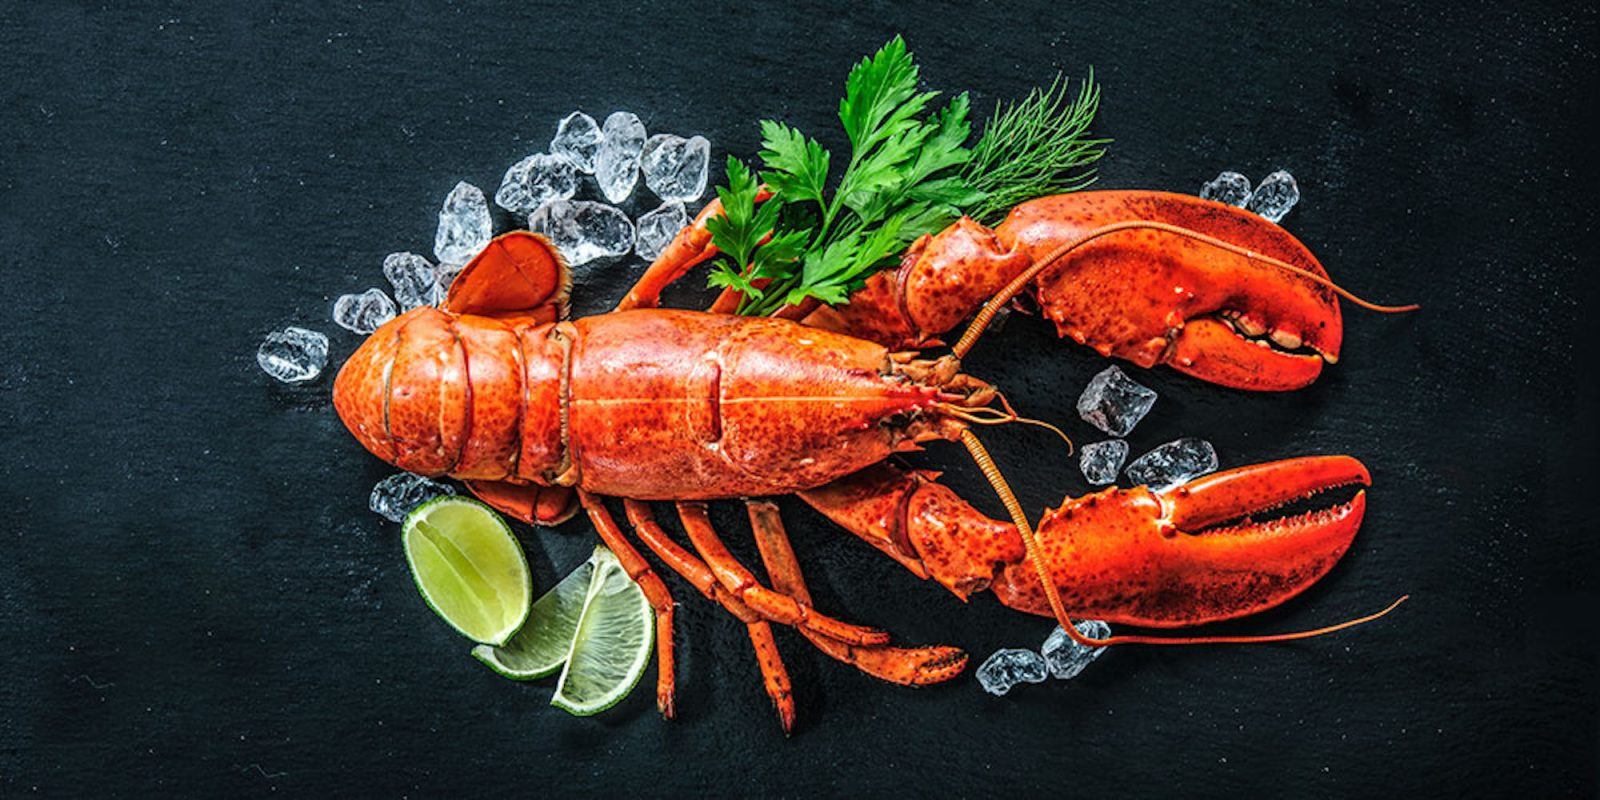 Get Maine Lobsters delivered to your door for only $90